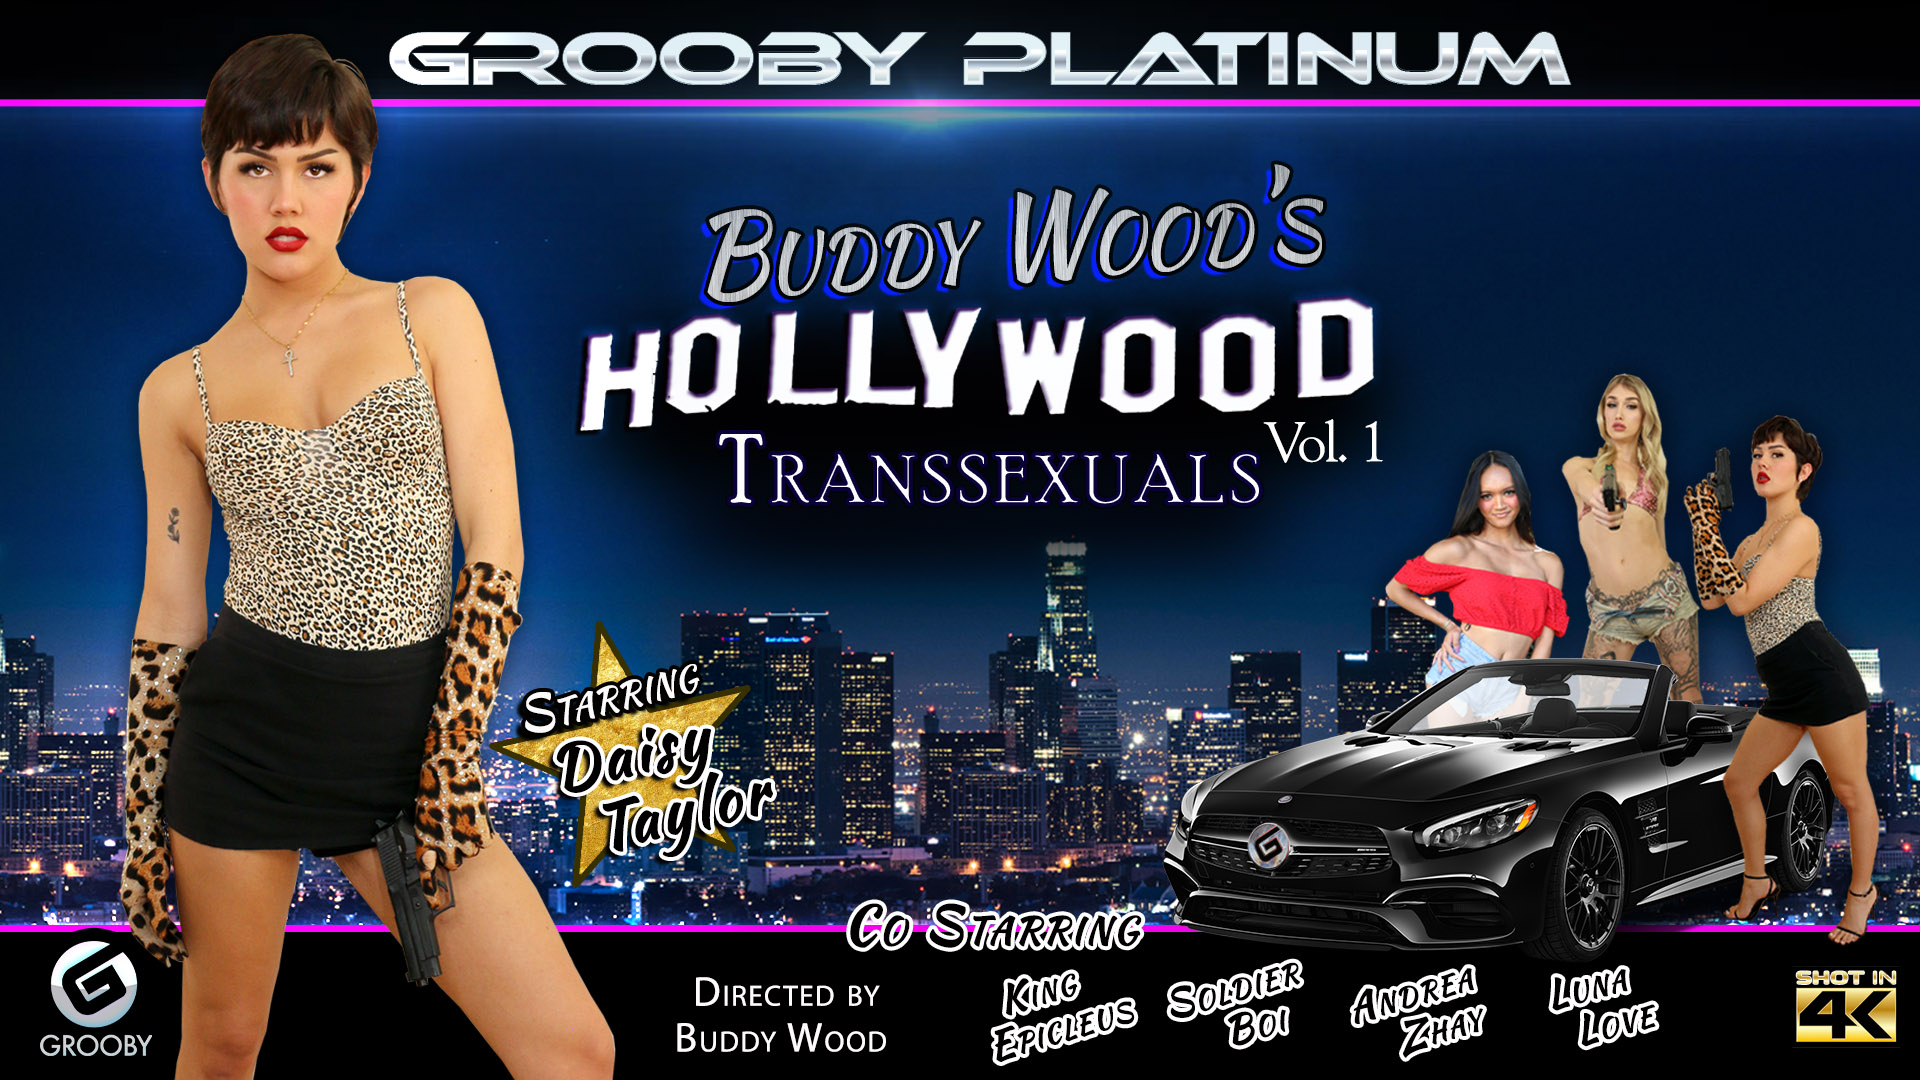 Buddy Wood's Hollywood Transsexuals Vol.1